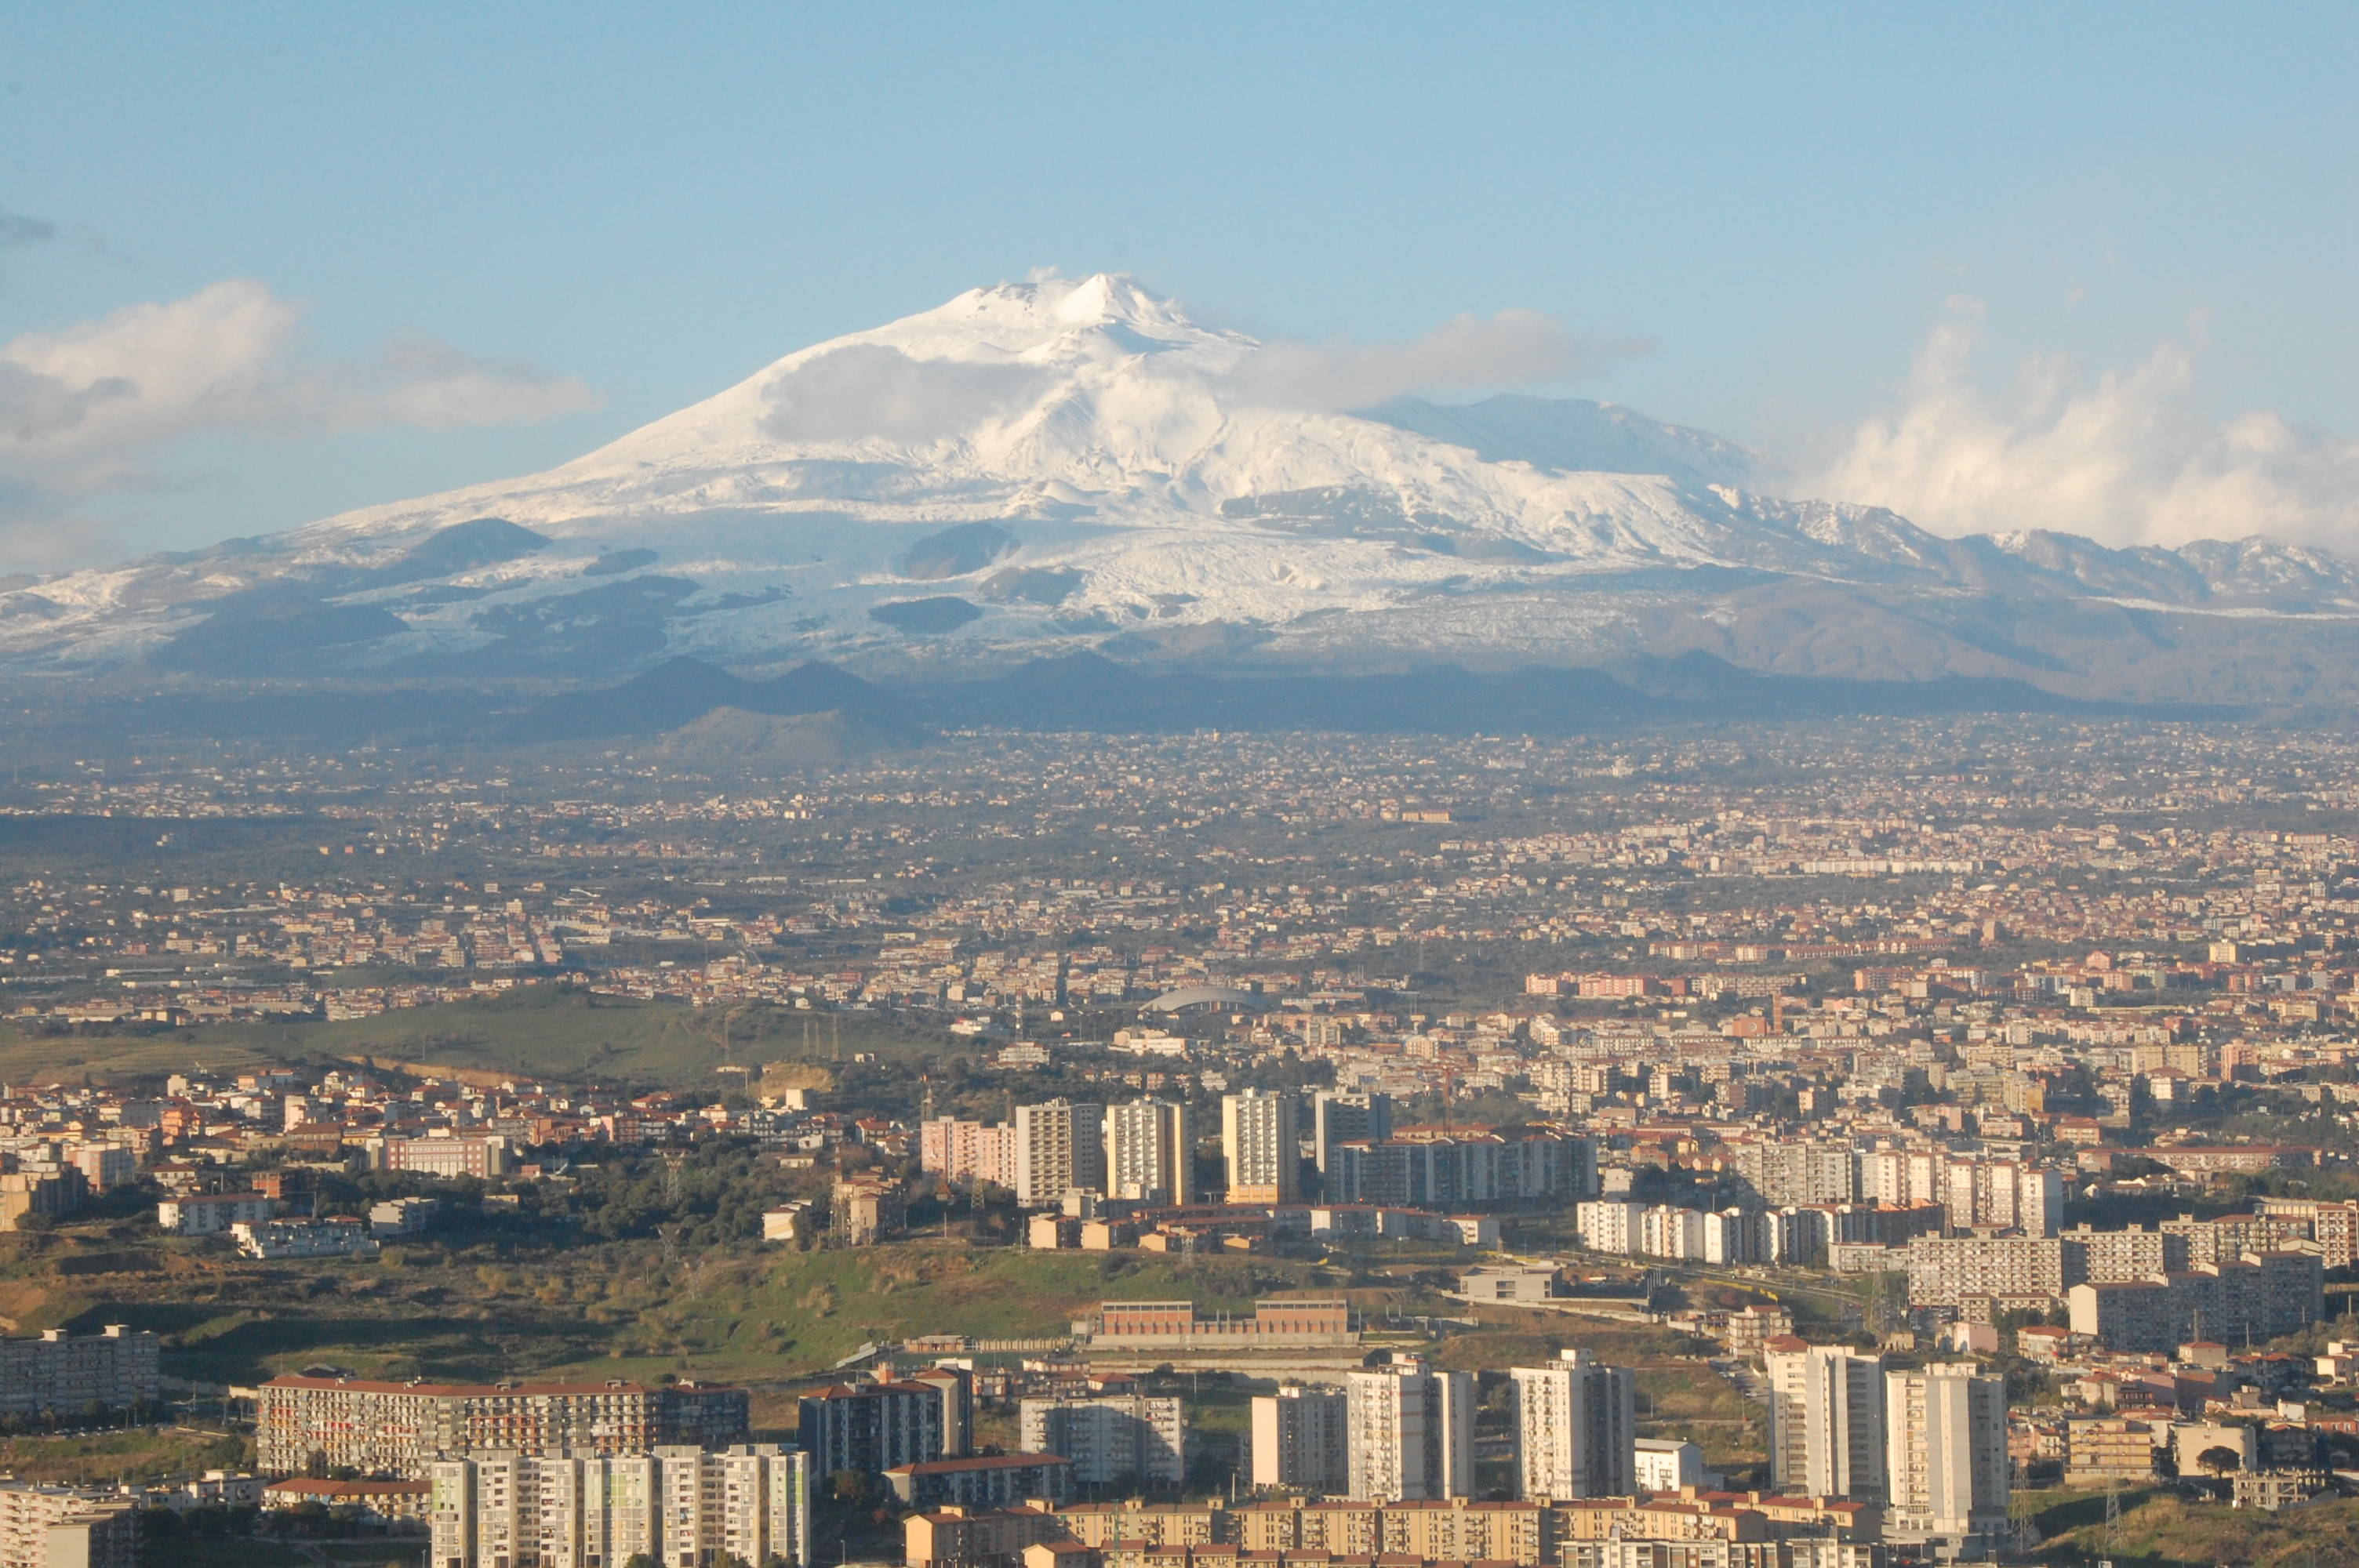 https://upload.wikimedia.org/wikipedia/commons/8/8d/Mt_Etna_and_Catania.JPG